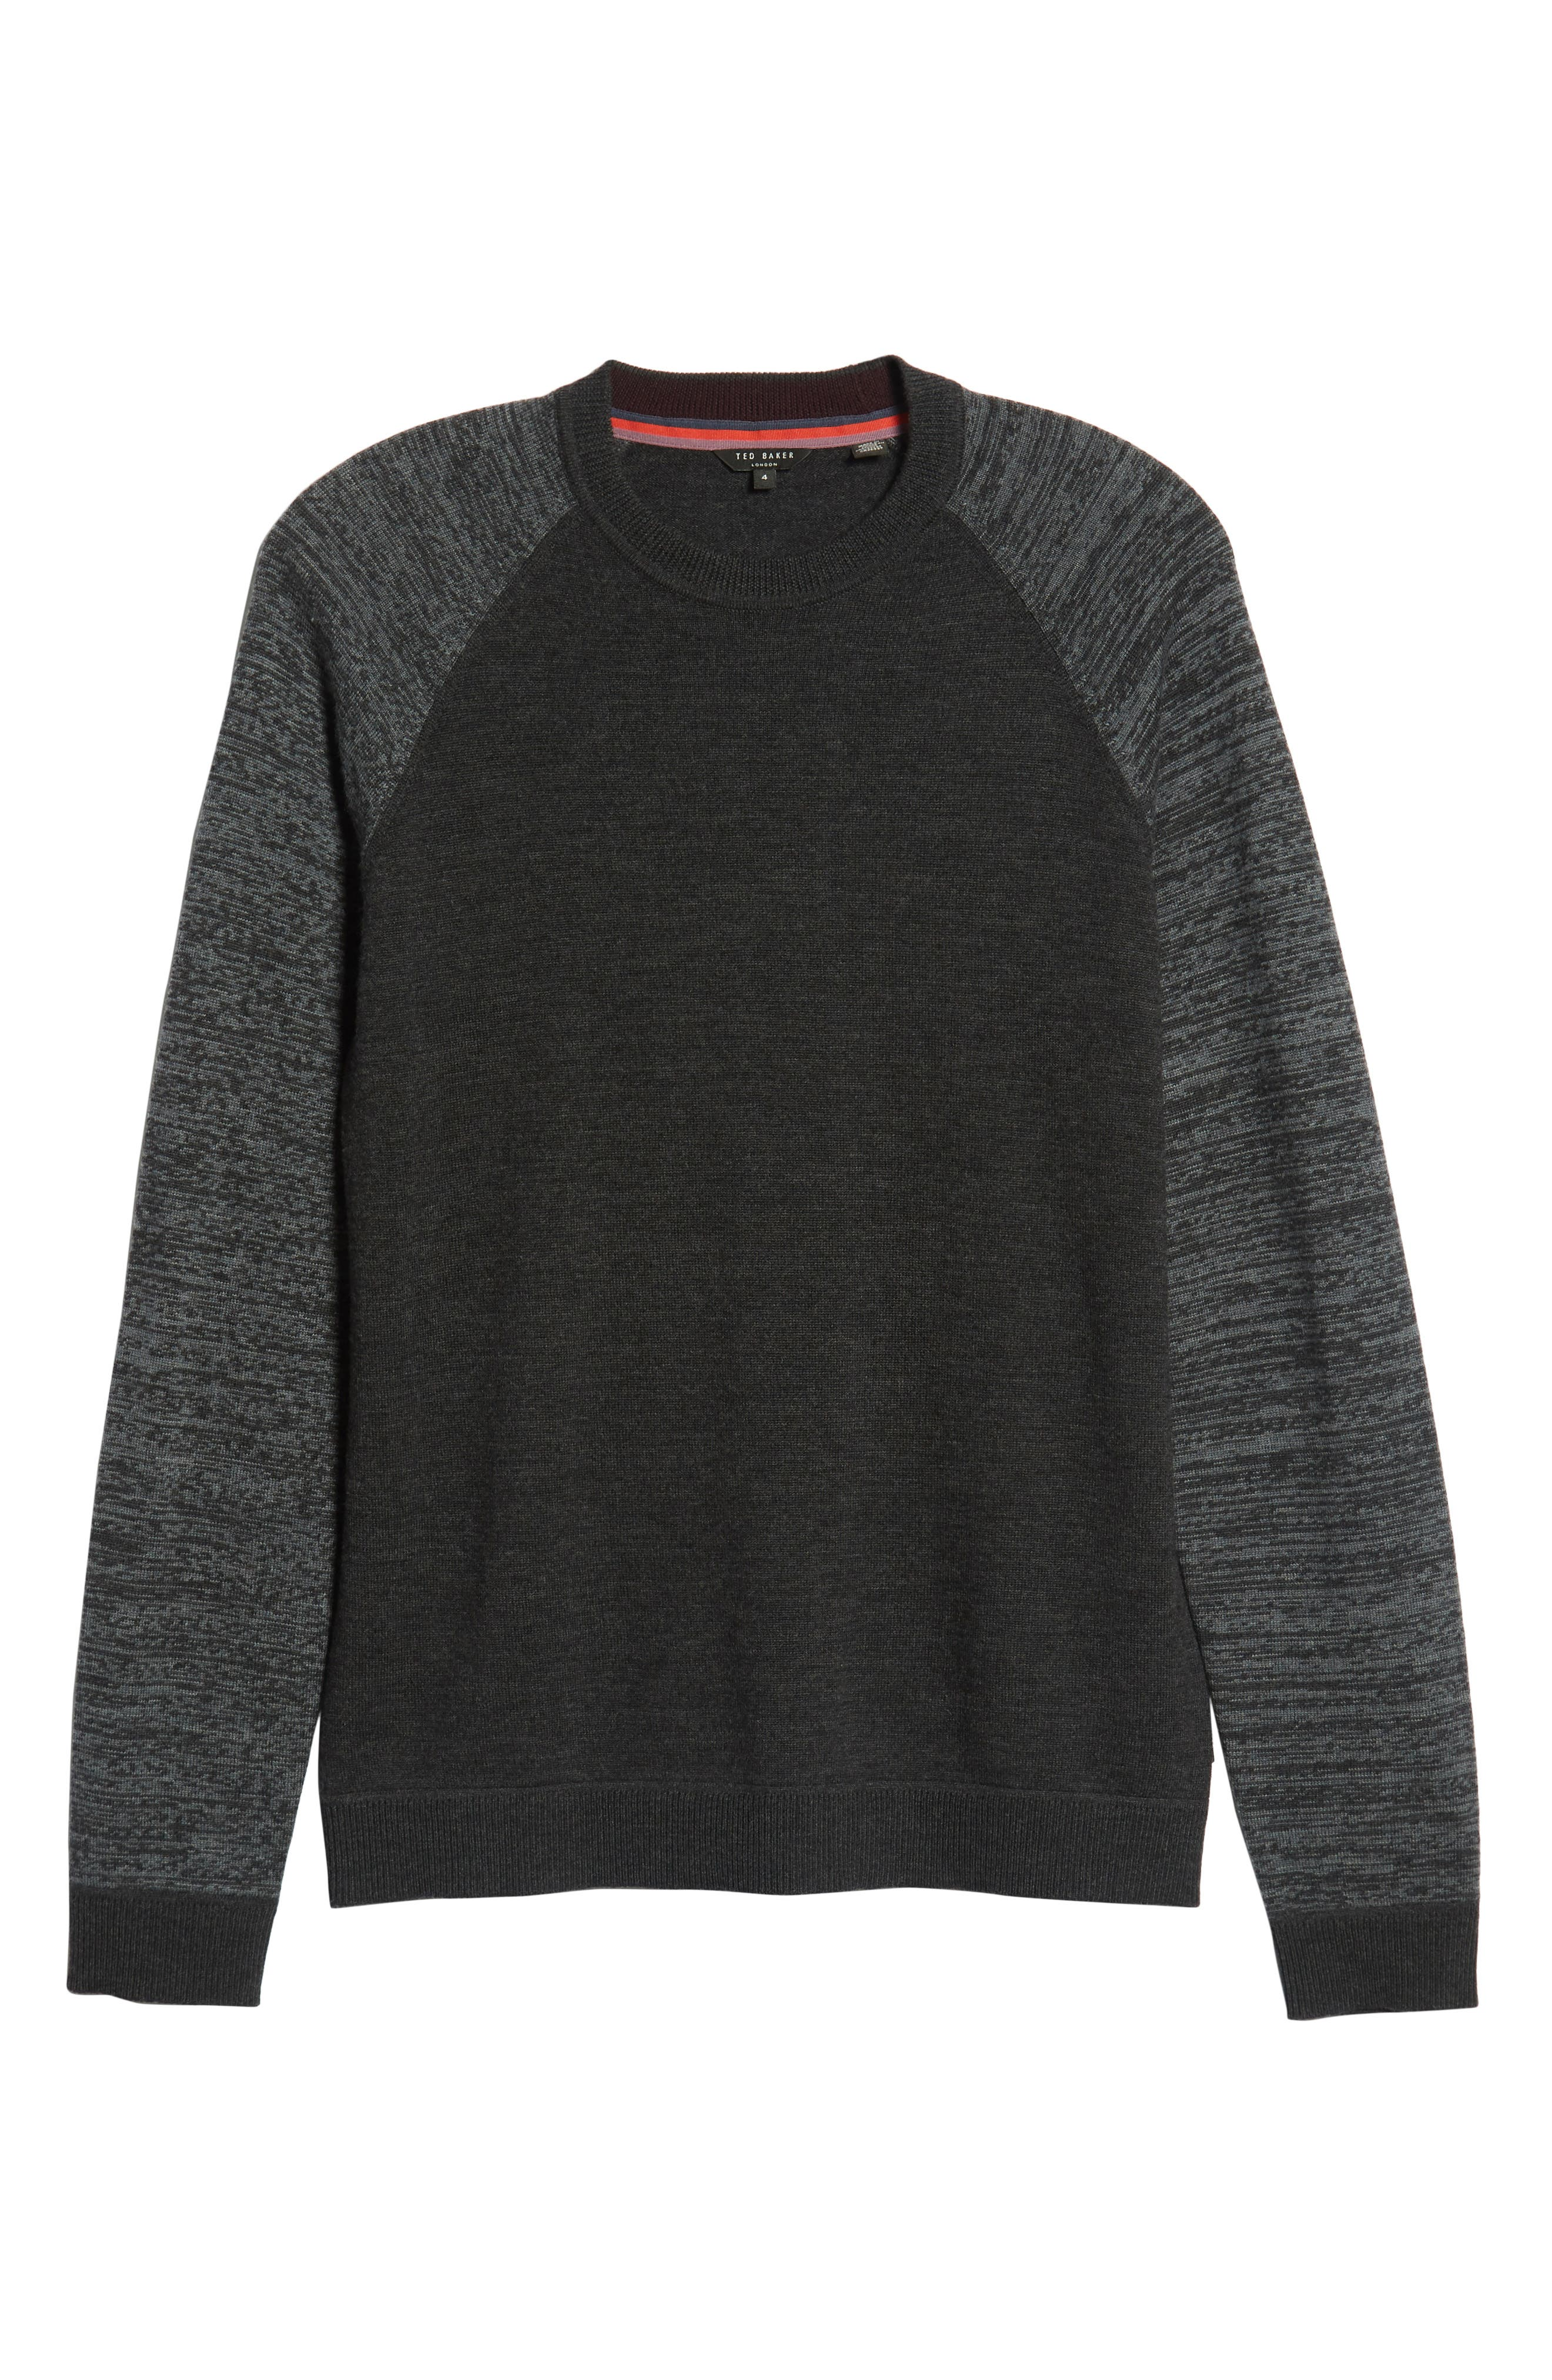 Cornfed Slim Fit Sweater,                             Alternate thumbnail 6, color,                             CHARCOAL